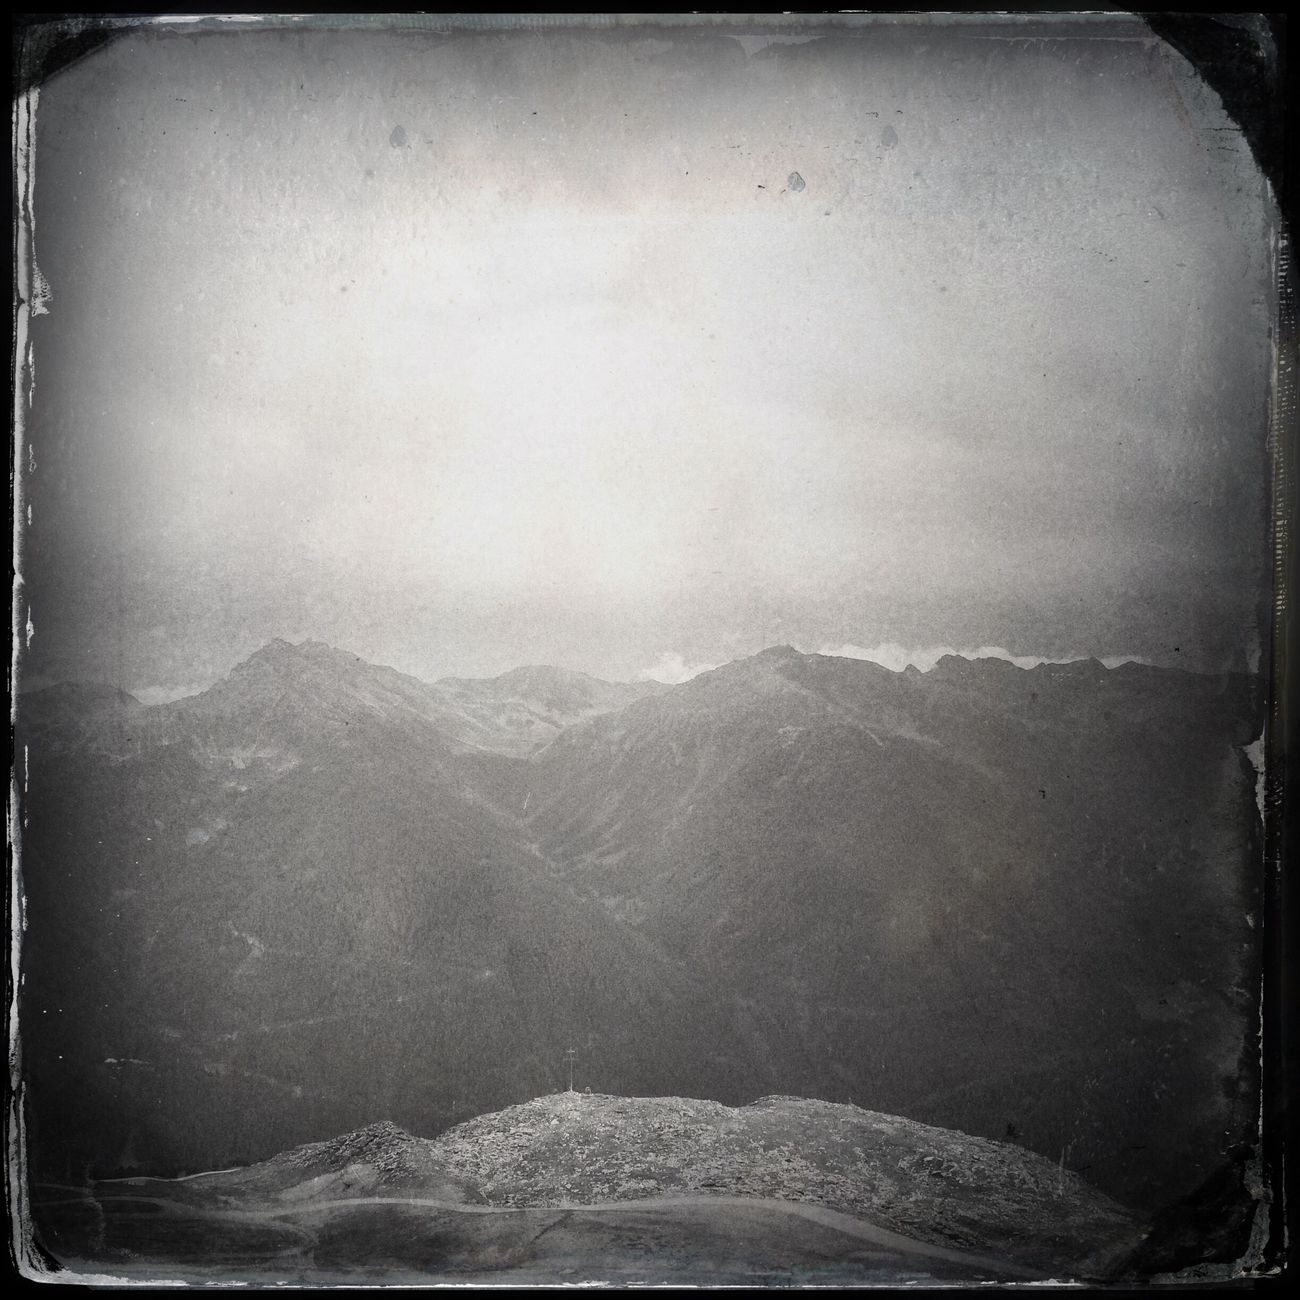 Mountains Hipstamatic Blackandwhite The_guido